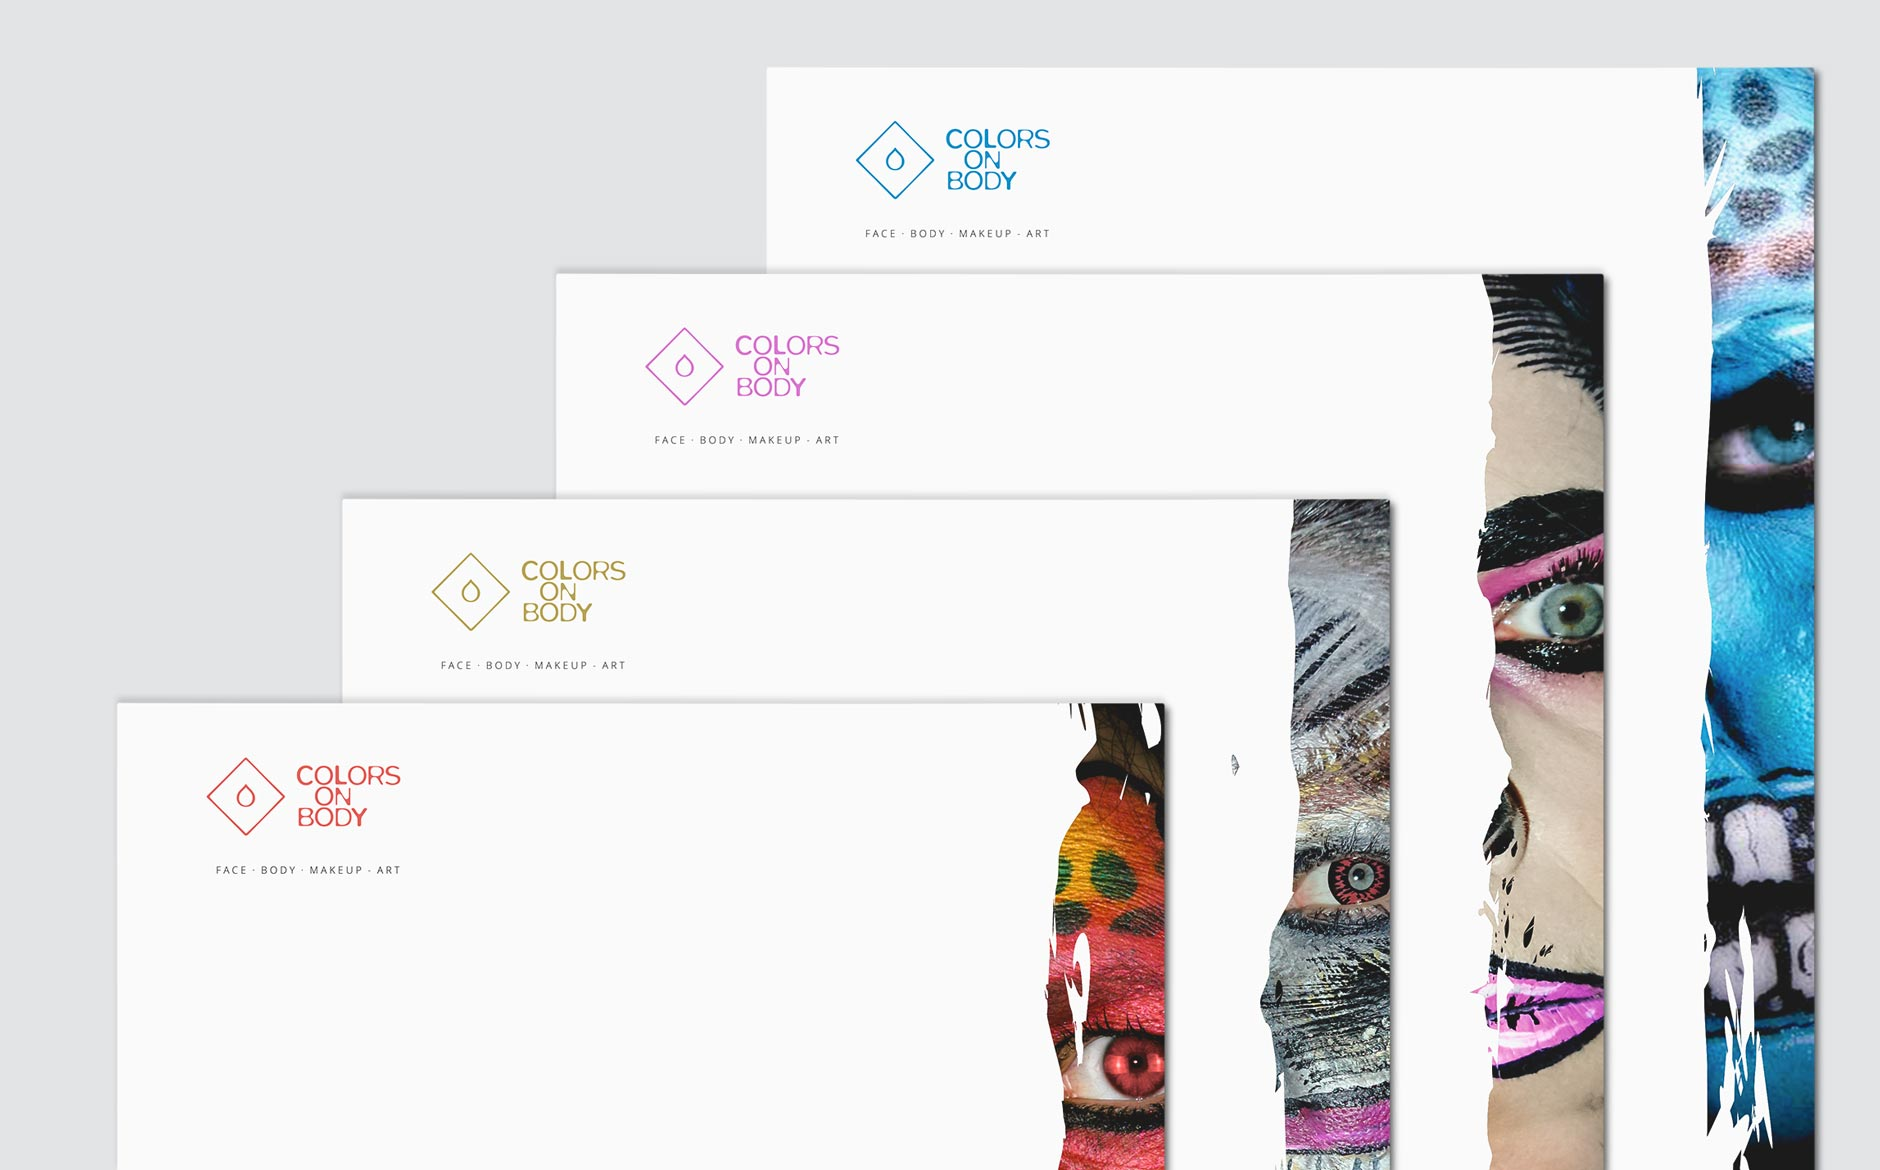 briefpapier design colors on body 02 2-Corporate Identity COLORS ON BODY